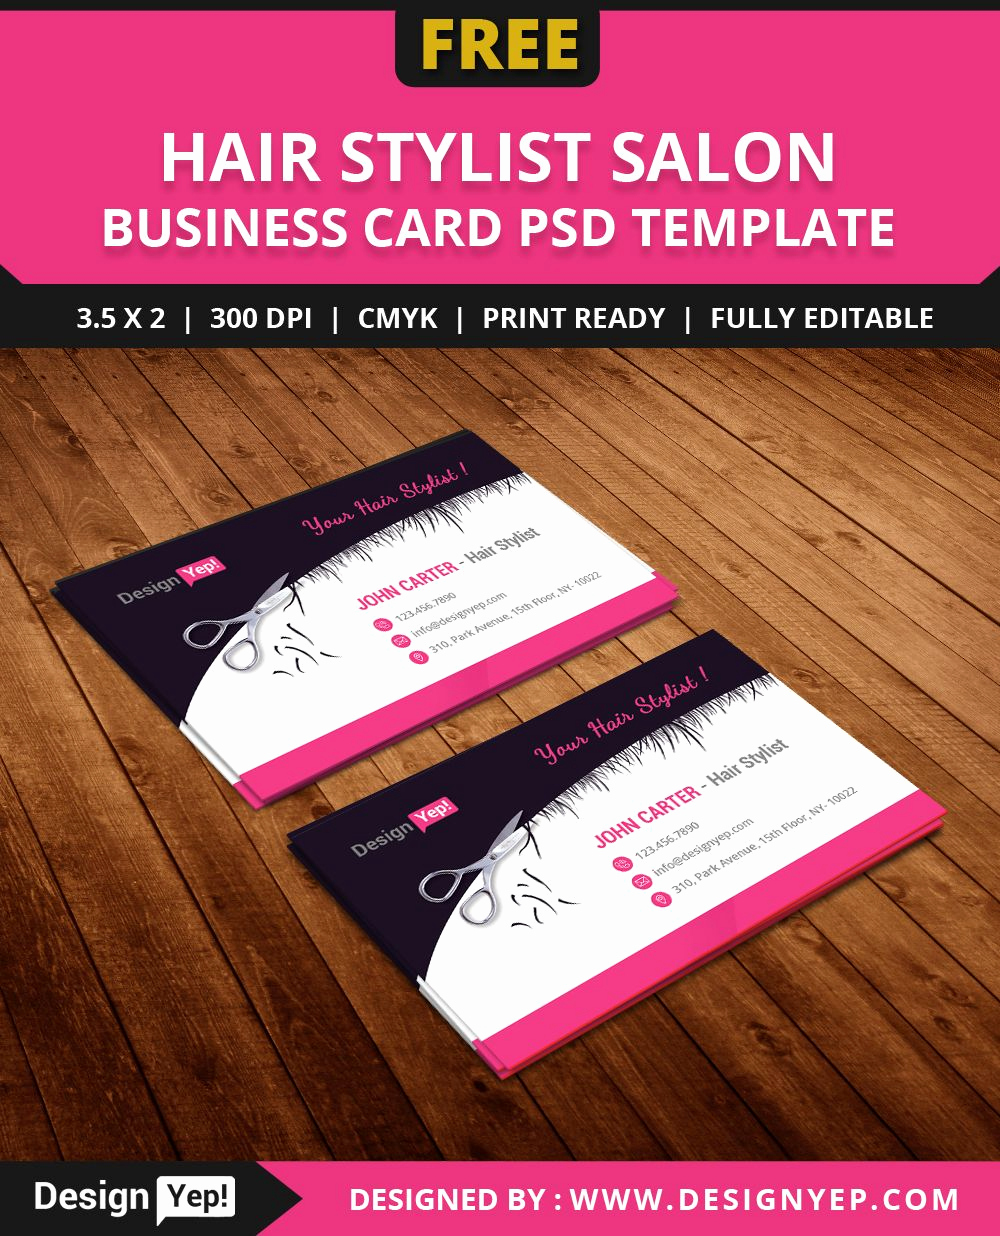 Hair Salons Business Cards Best Of Free Hair Stylist Salon Business Card Template Psd